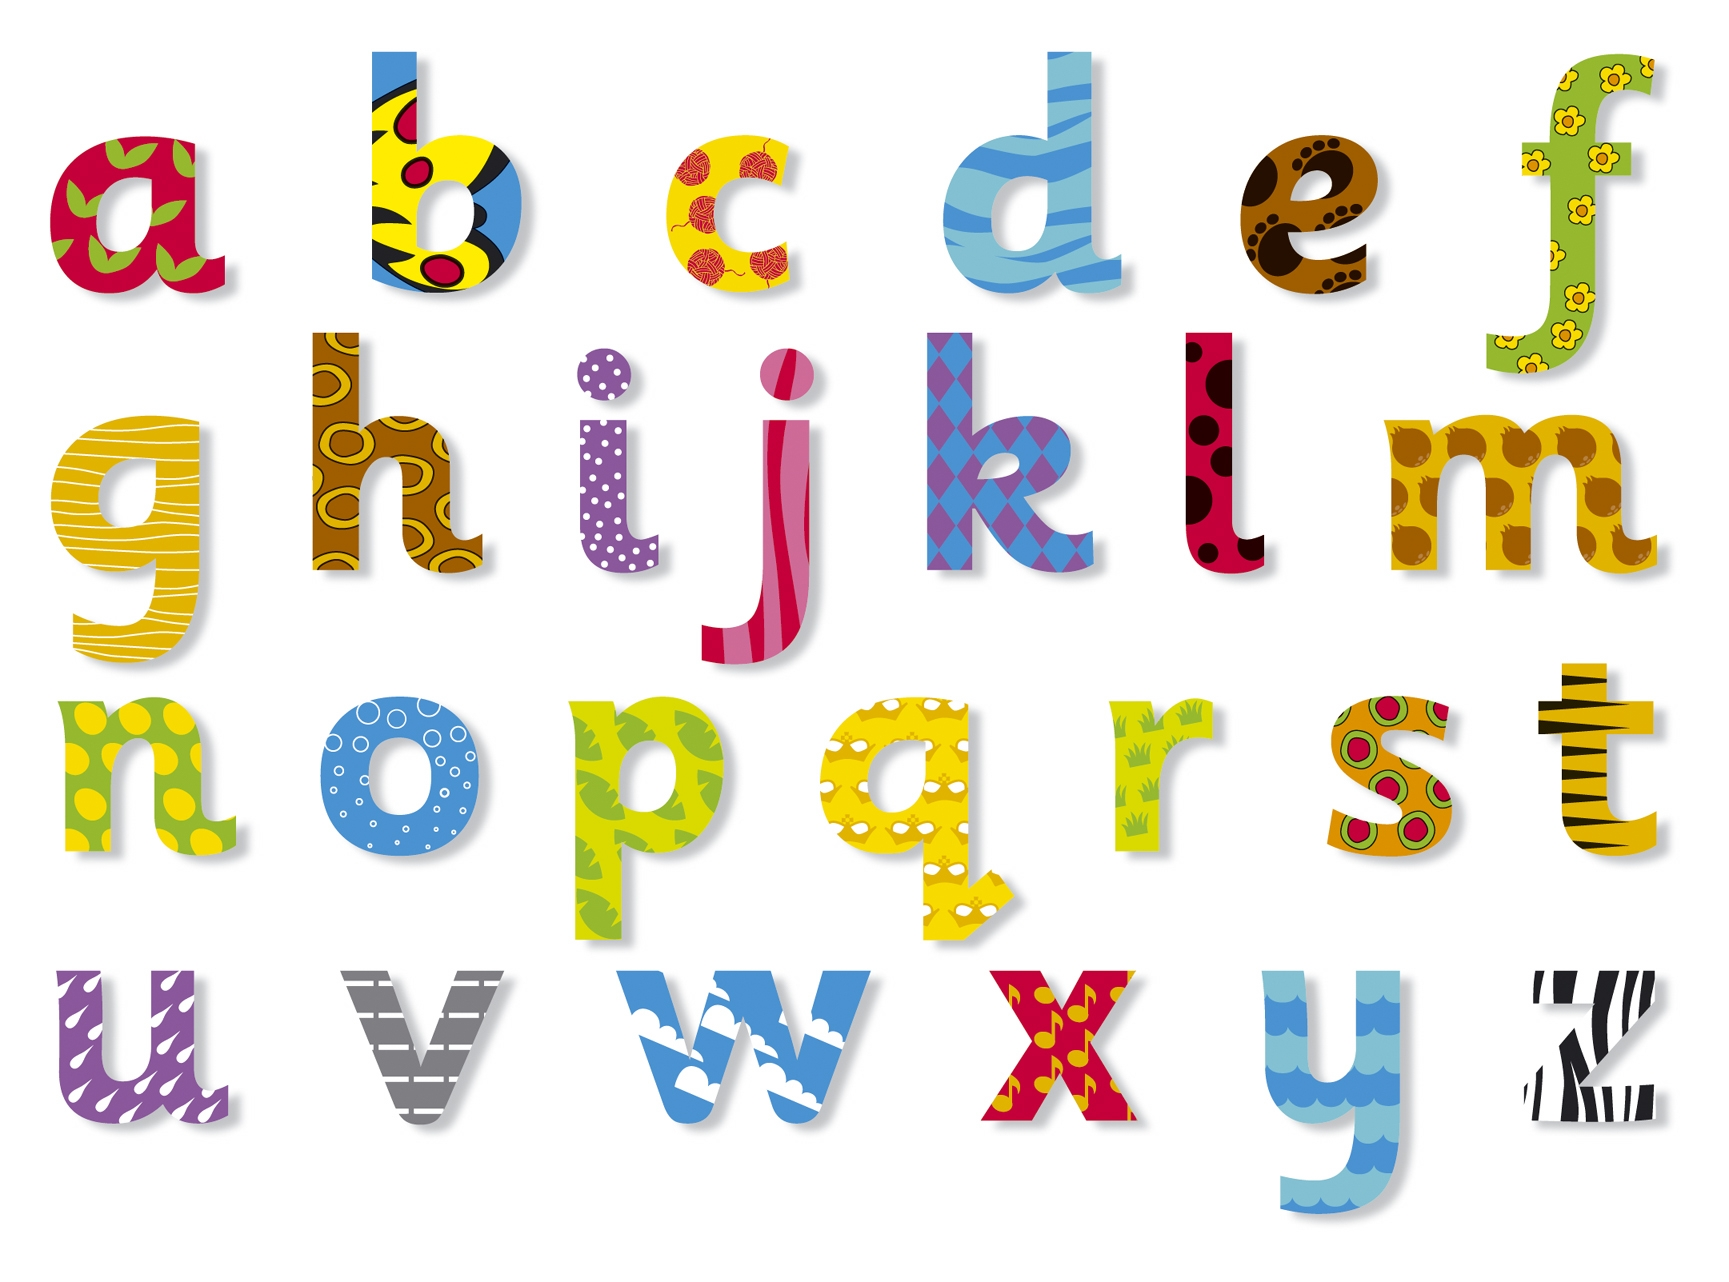 Clipart lower case letters clipart freeuse library Lower case alphabet clipart - ClipartFest clipart freeuse library